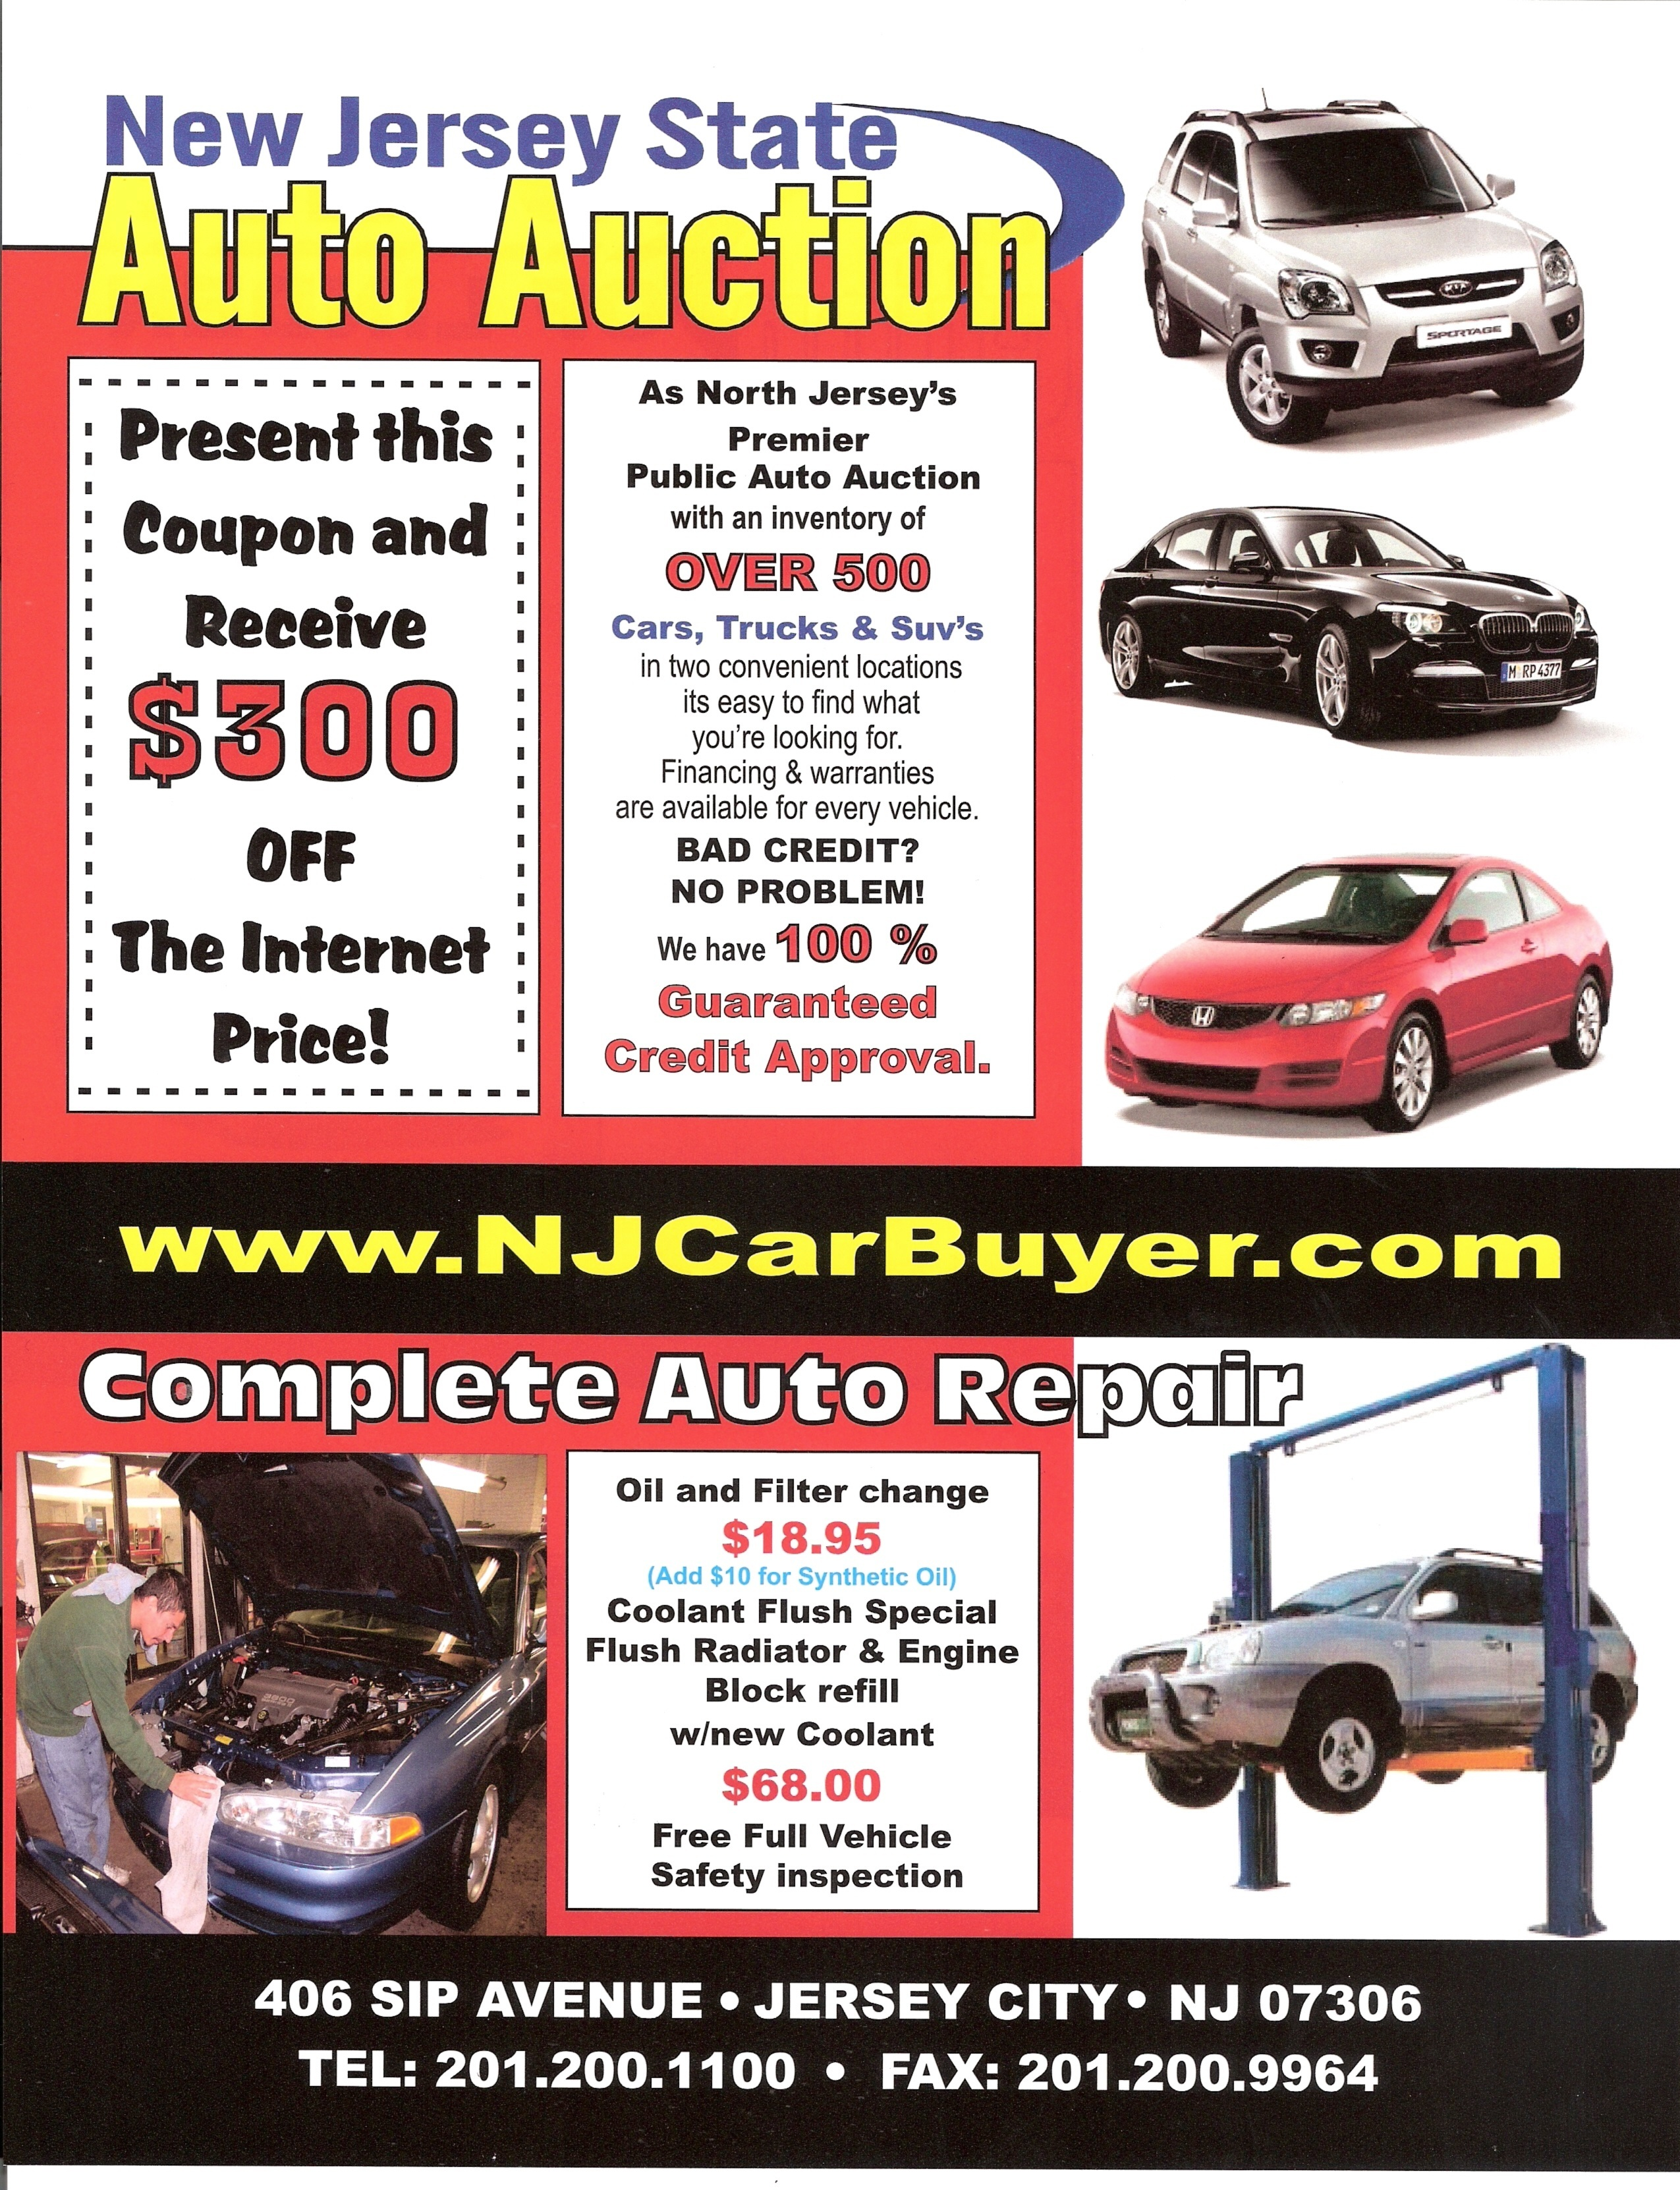 used car dealers in new jersey new jersey state auto autos post. Black Bedroom Furniture Sets. Home Design Ideas